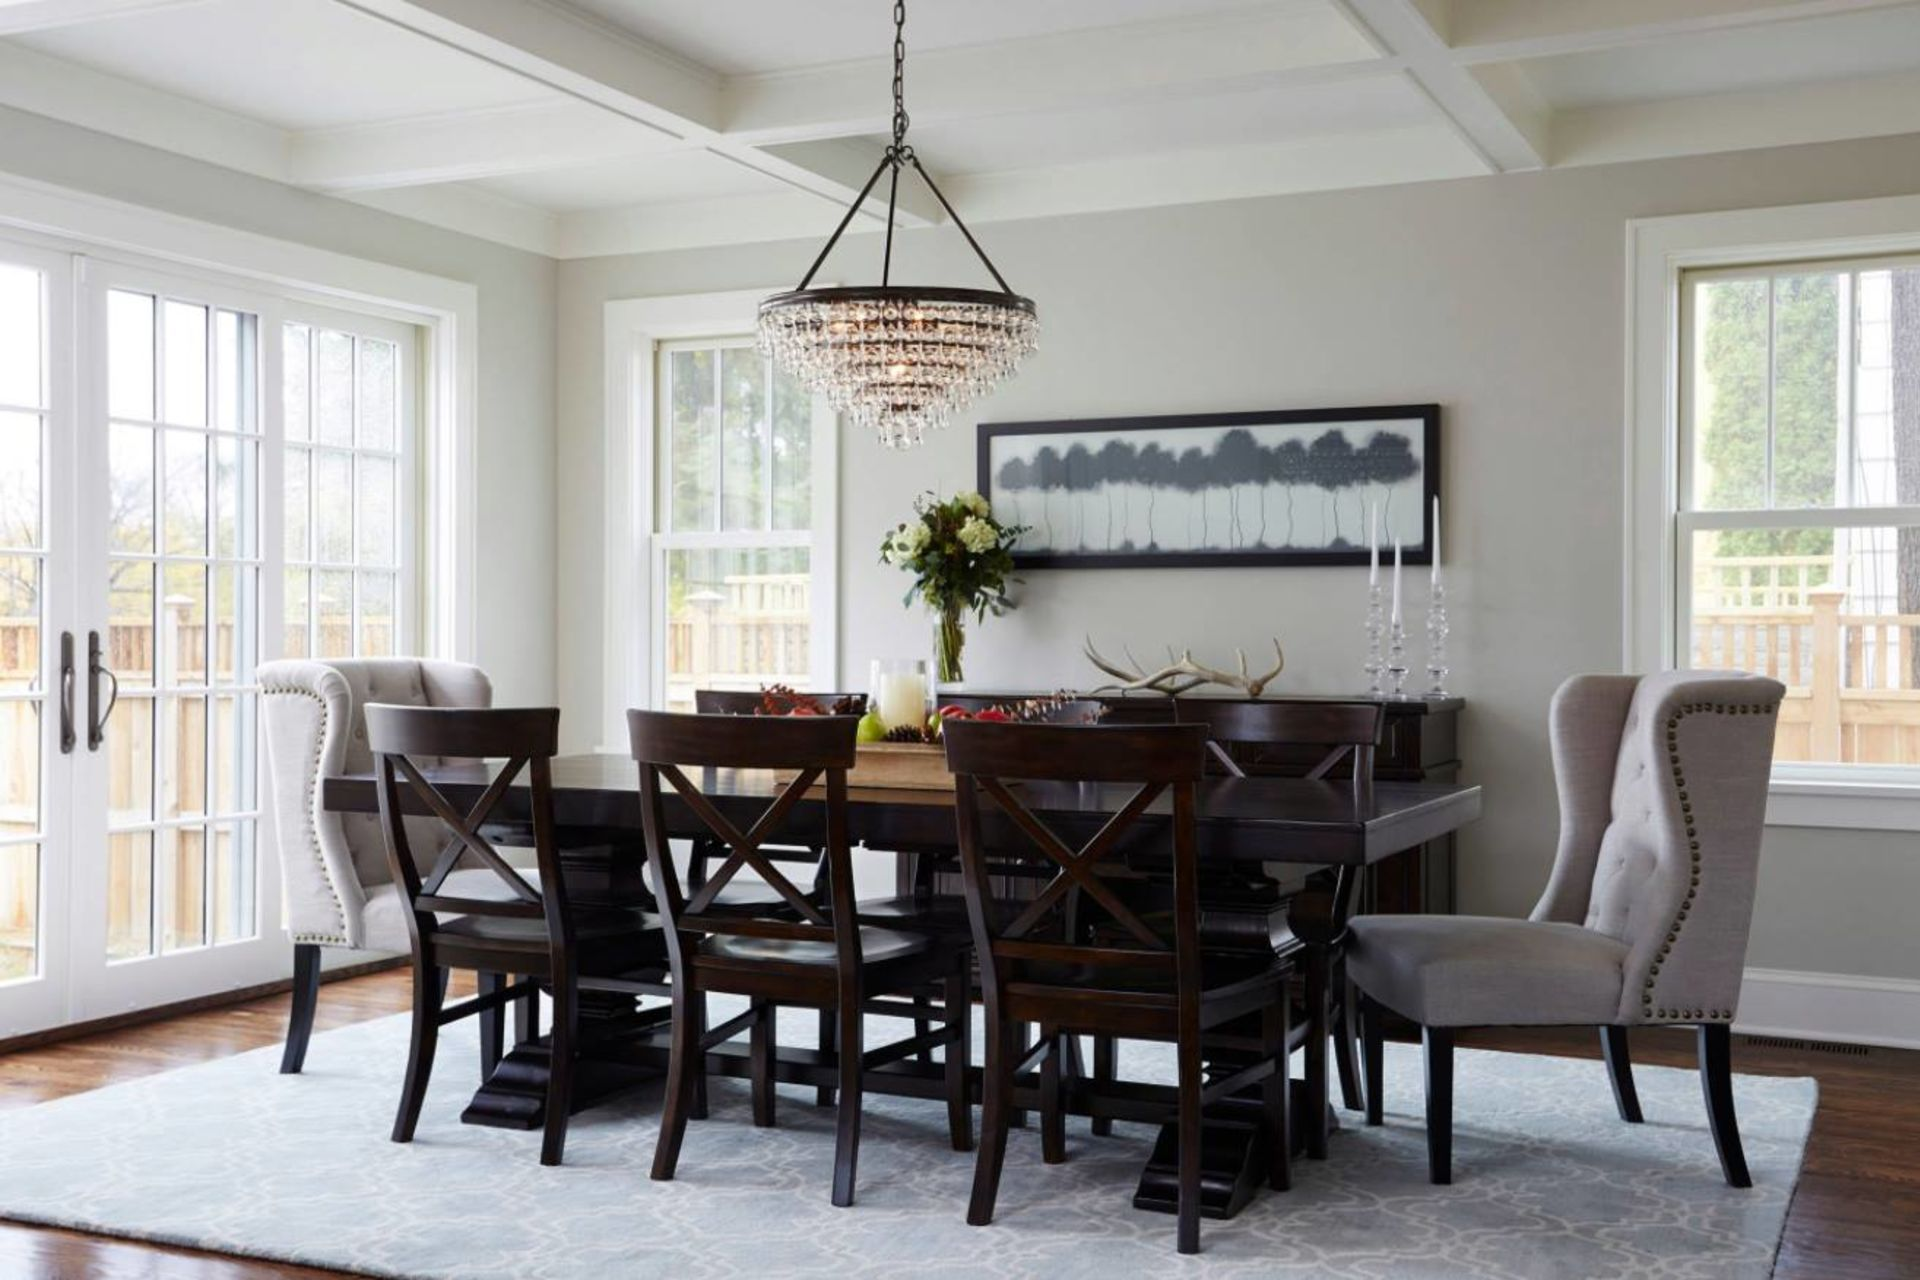 Are dining rooms obsolete?